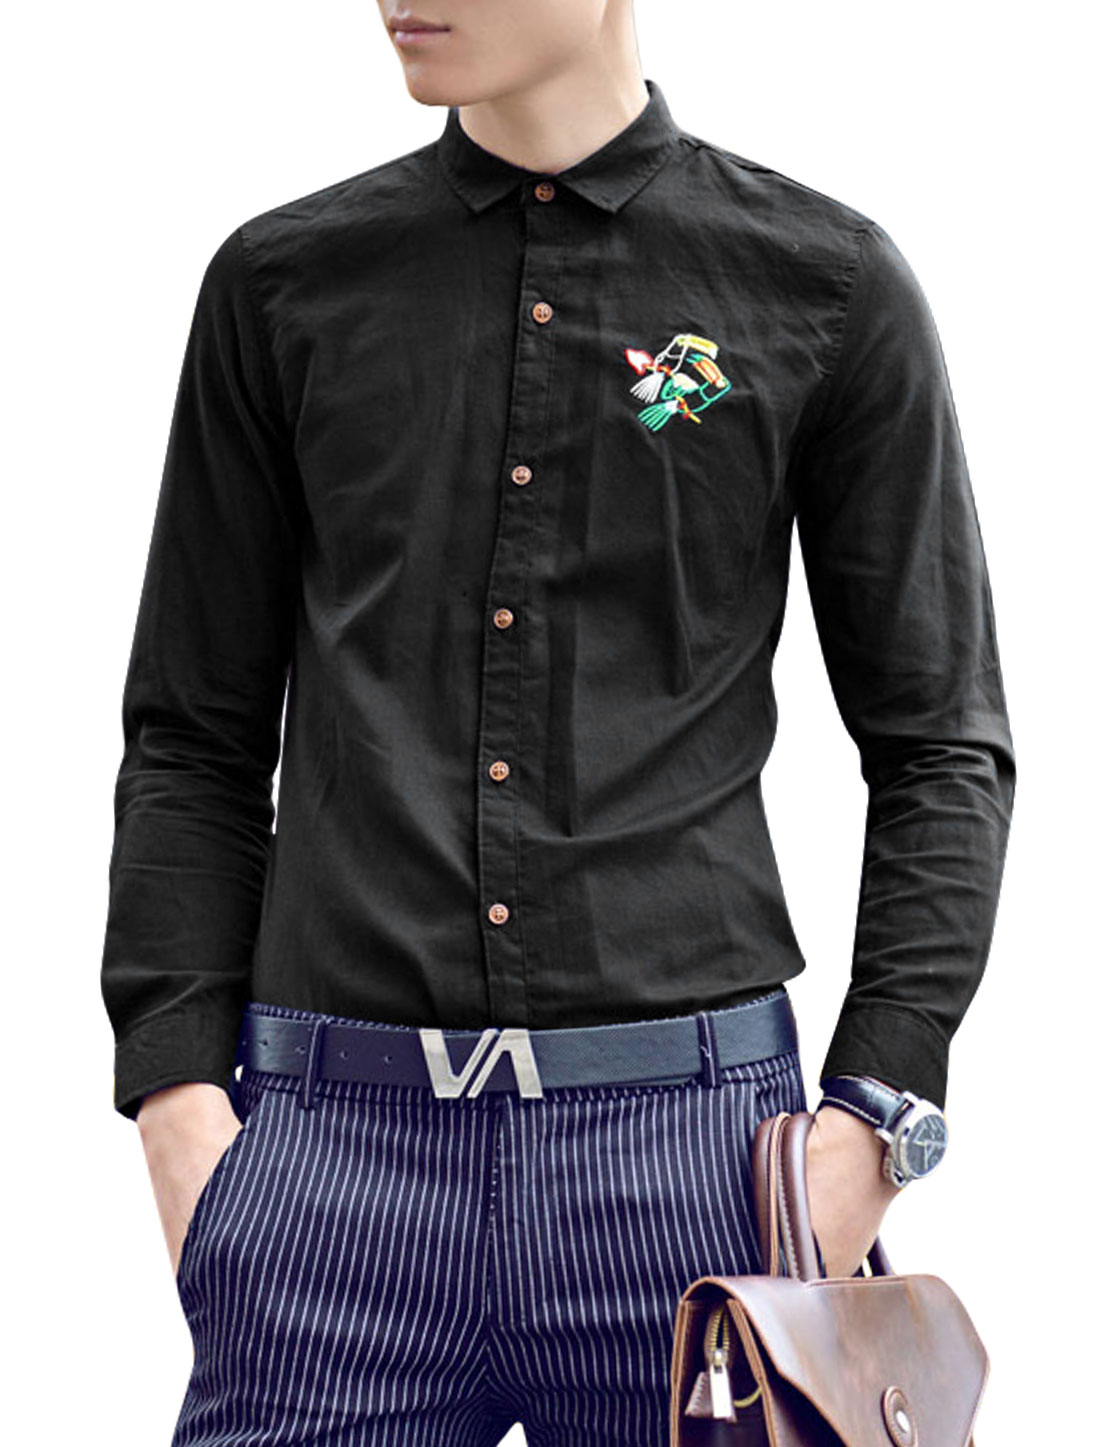 Men Long Sleeve Point Collar Button Closure Chic Shirt Black S